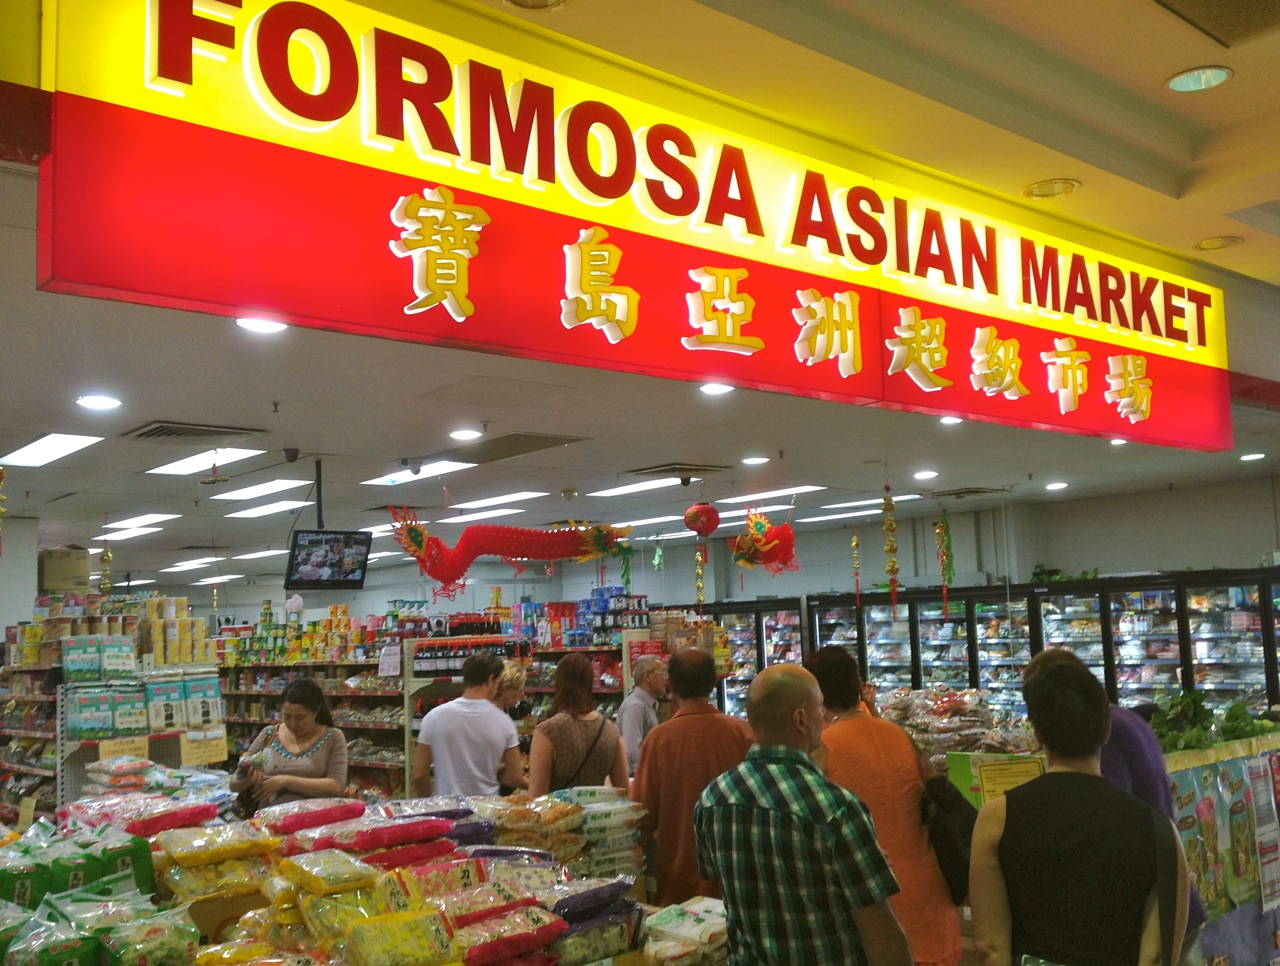 Sunnybank Plaza Food Discovery Tour - Formosa - Miss Foodie1